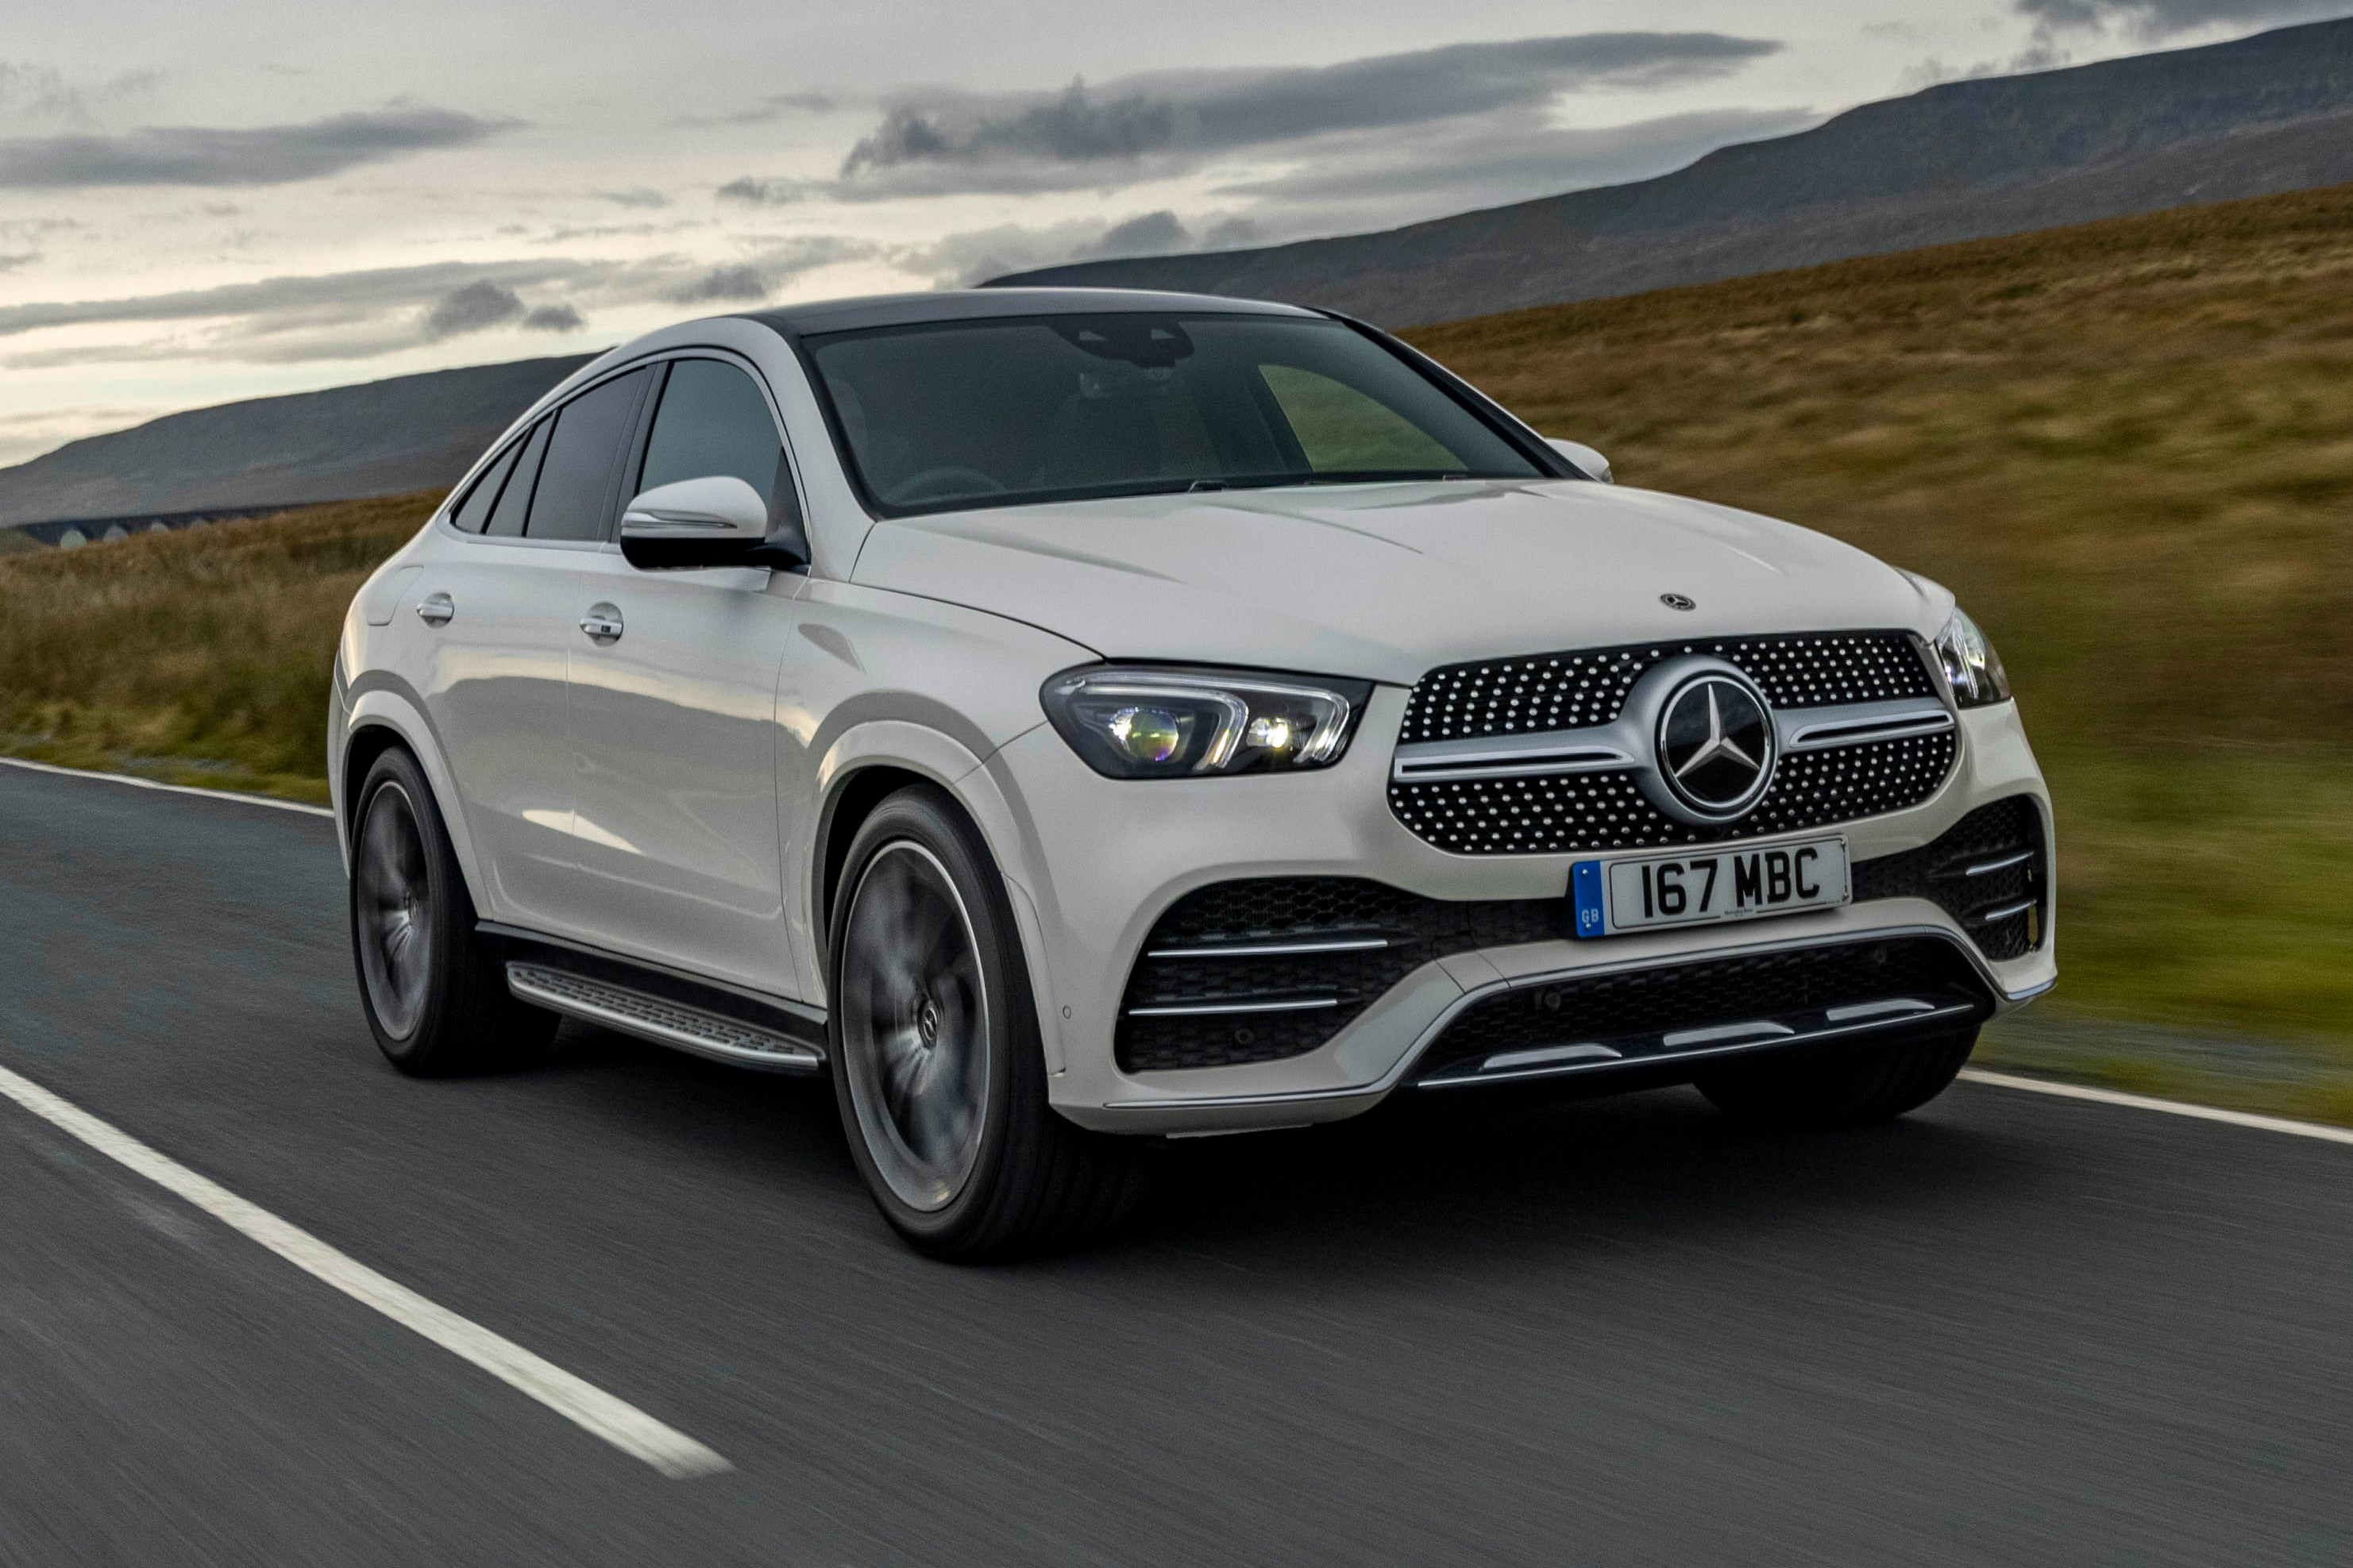 Mercedes GLE Coupe front